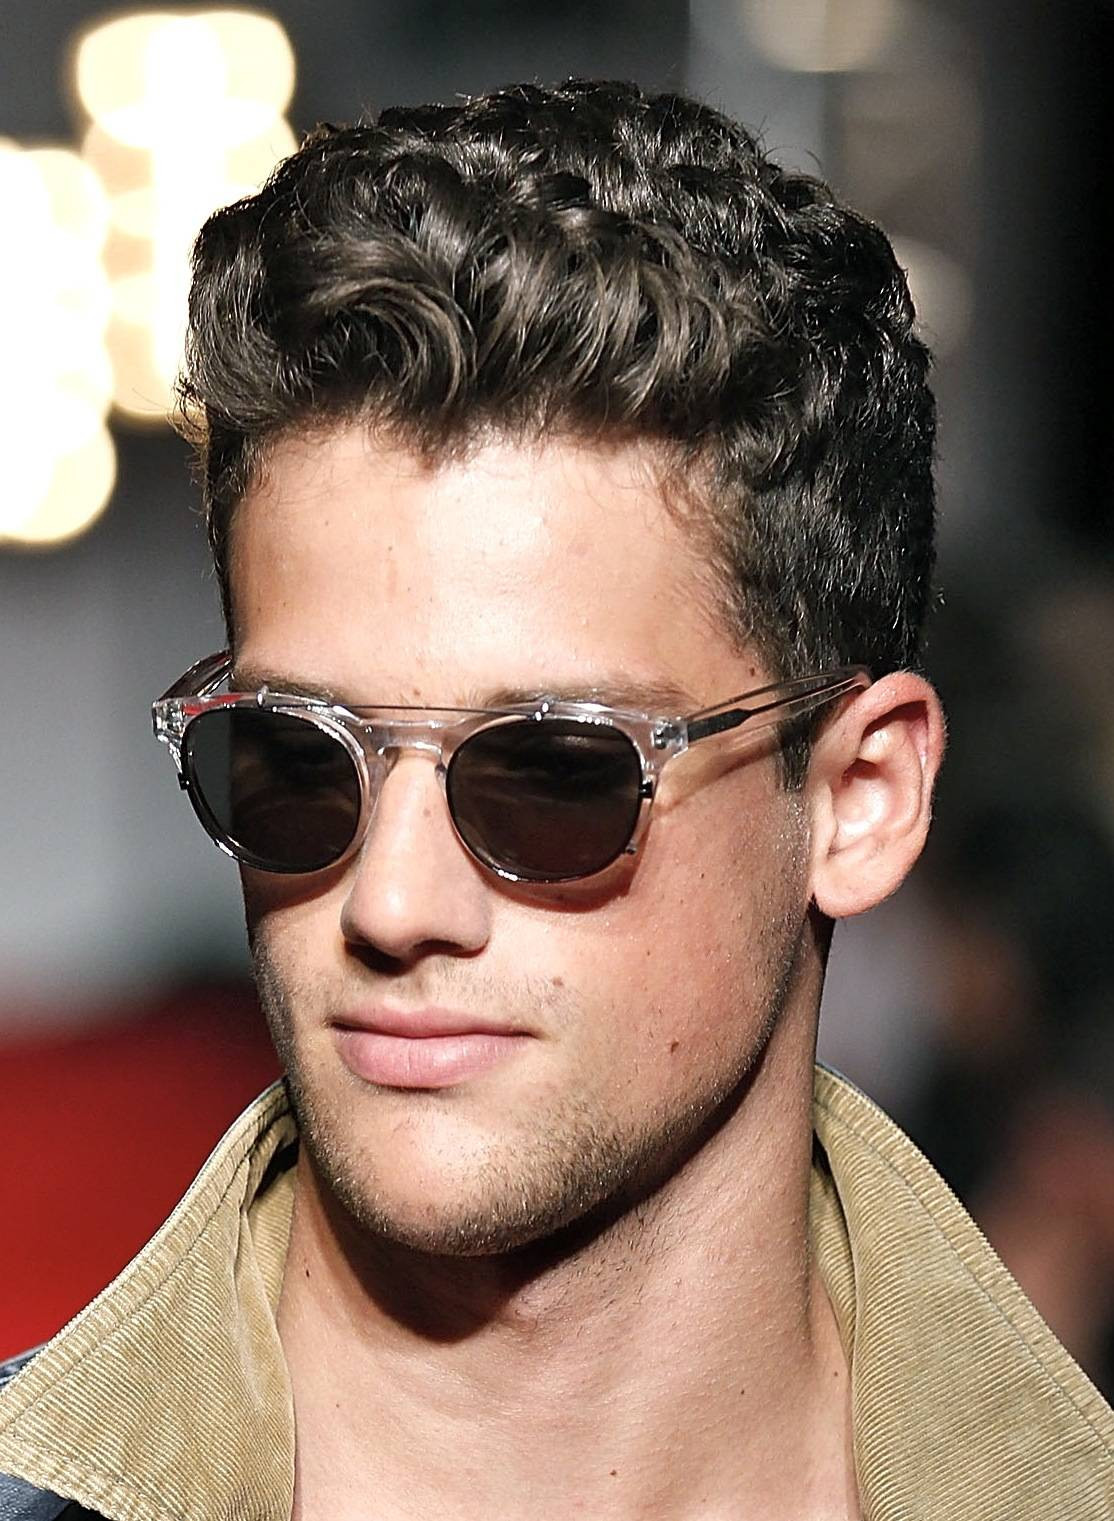 Best ideas about Mens Haircuts For Curly Hair . Save or Pin Rachael Beauty Hair Stylist Top 25 Men s Hair Styles Now.